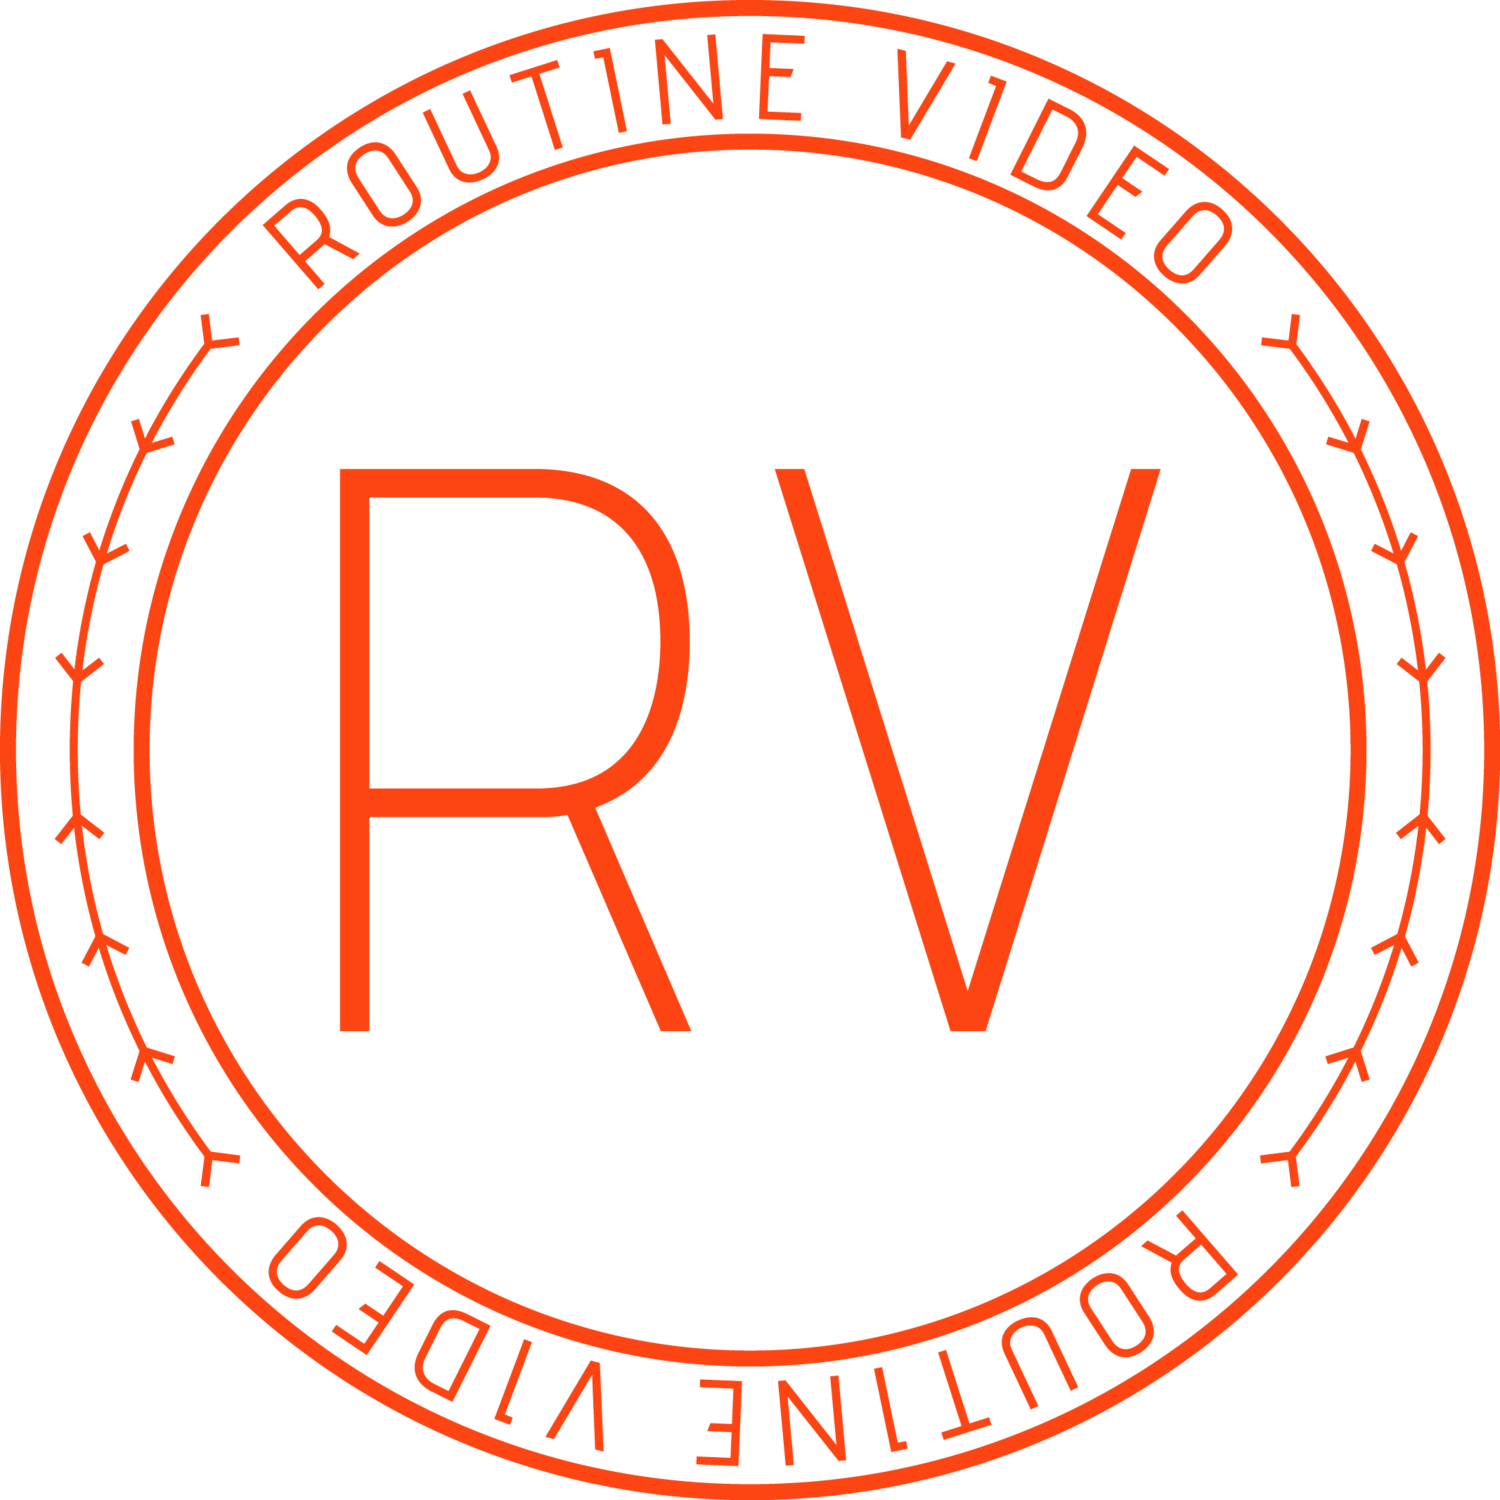 Routine Video Productions